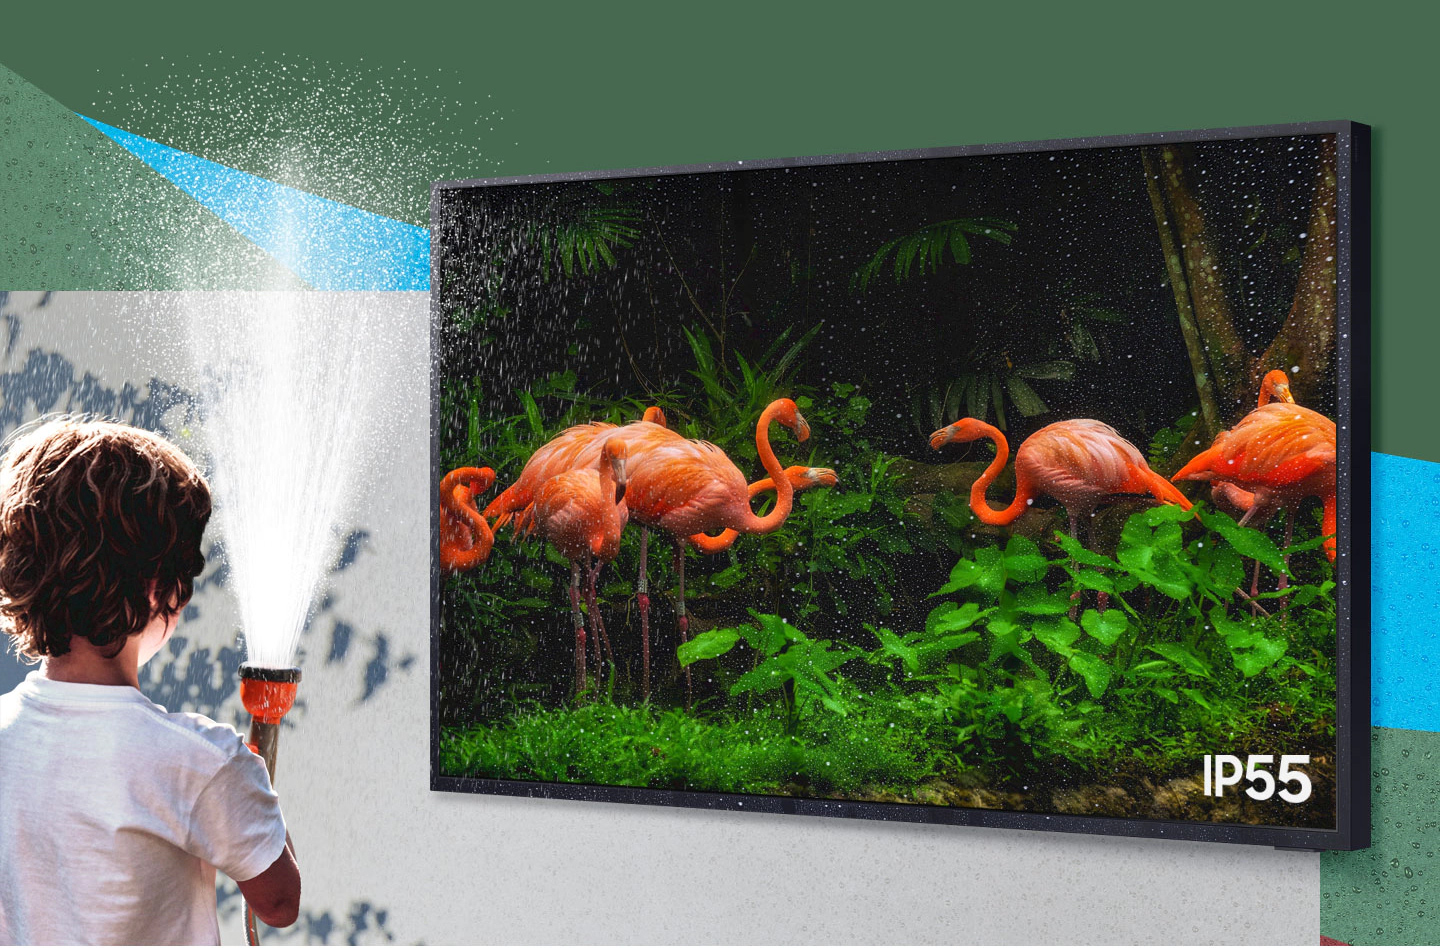 Waterproof TV by Samsung - the Samsung Terrace TV